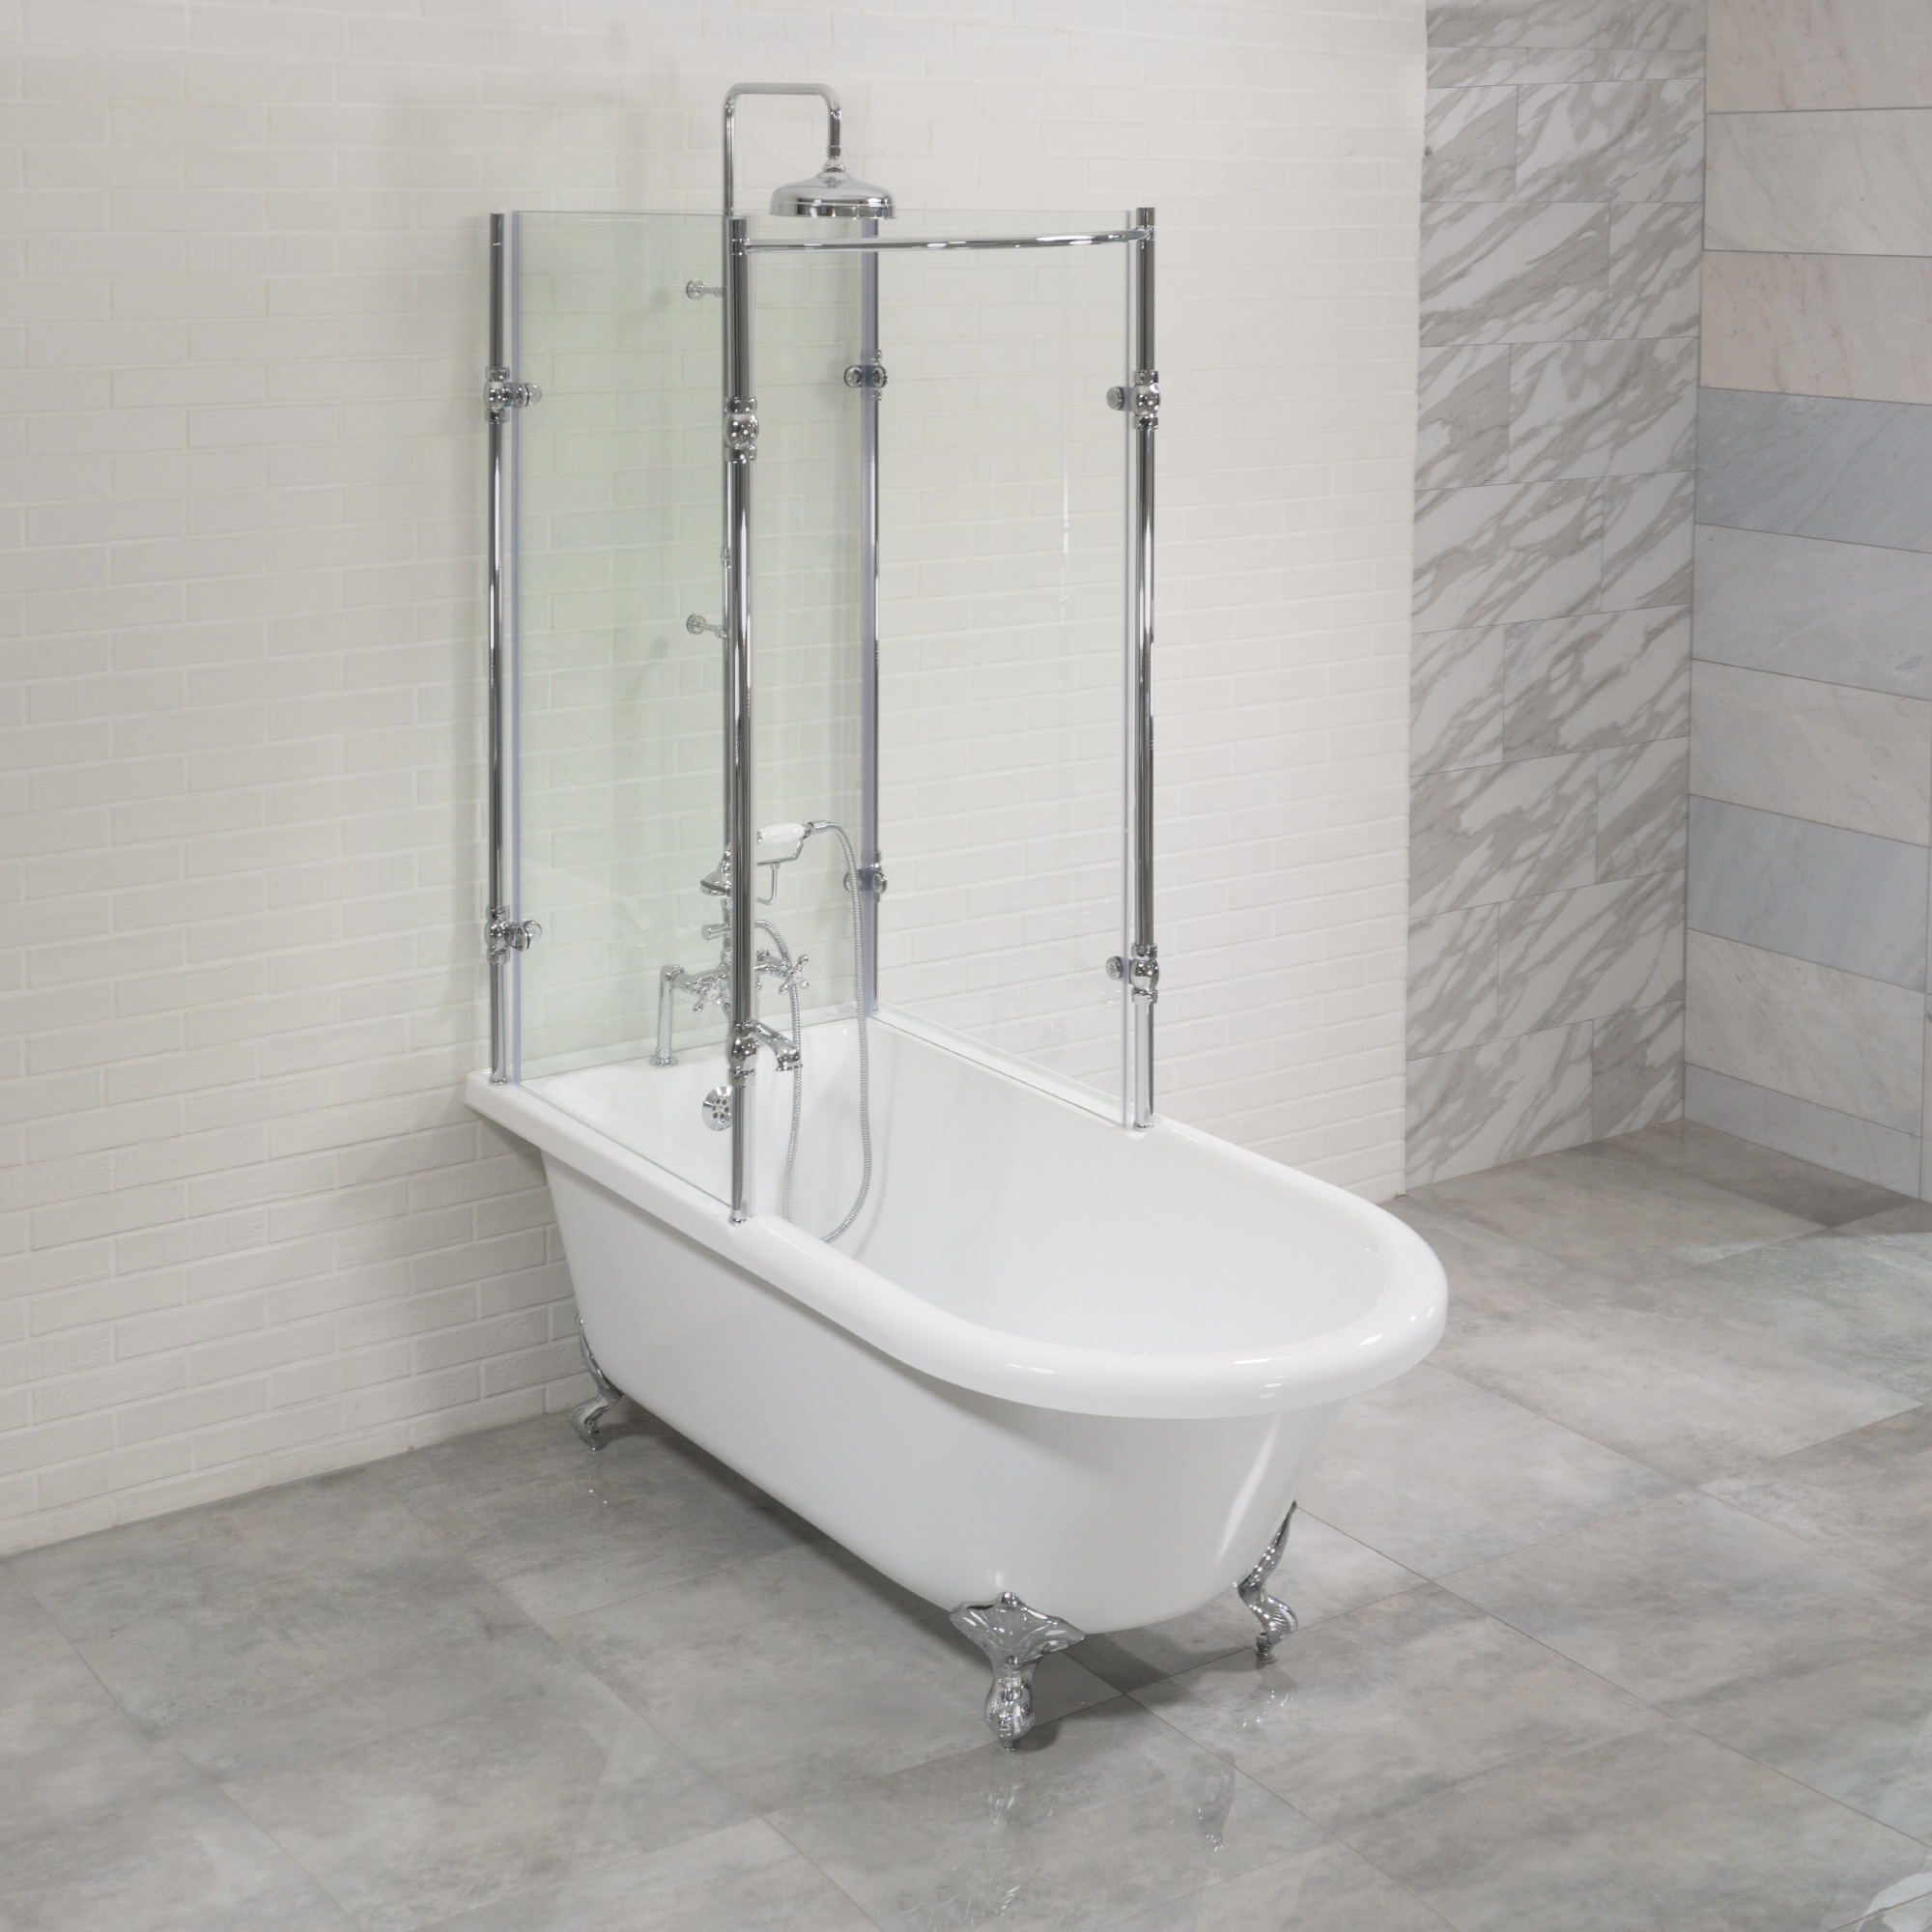 oasis 59 shpk 59 extra wide classic clawfoot shower tub with clear tempered glass shower enclosure package